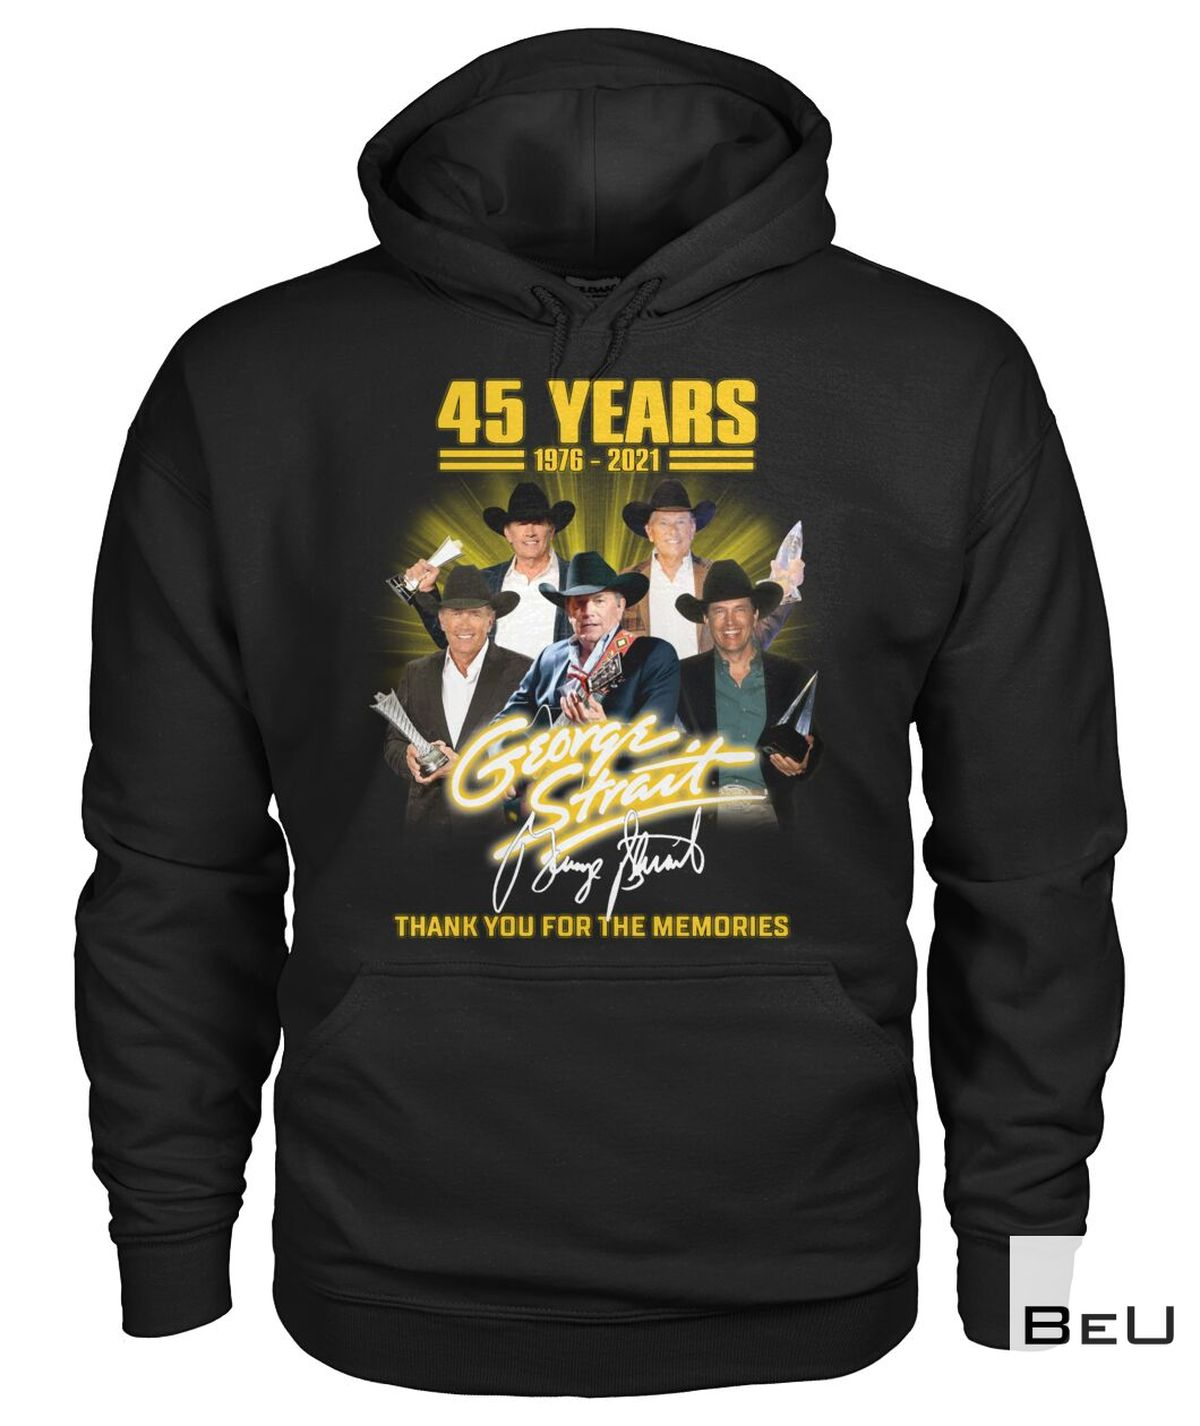 Only For Fan George Strait 45 Years Thank You Shirt, hoodie, tank top